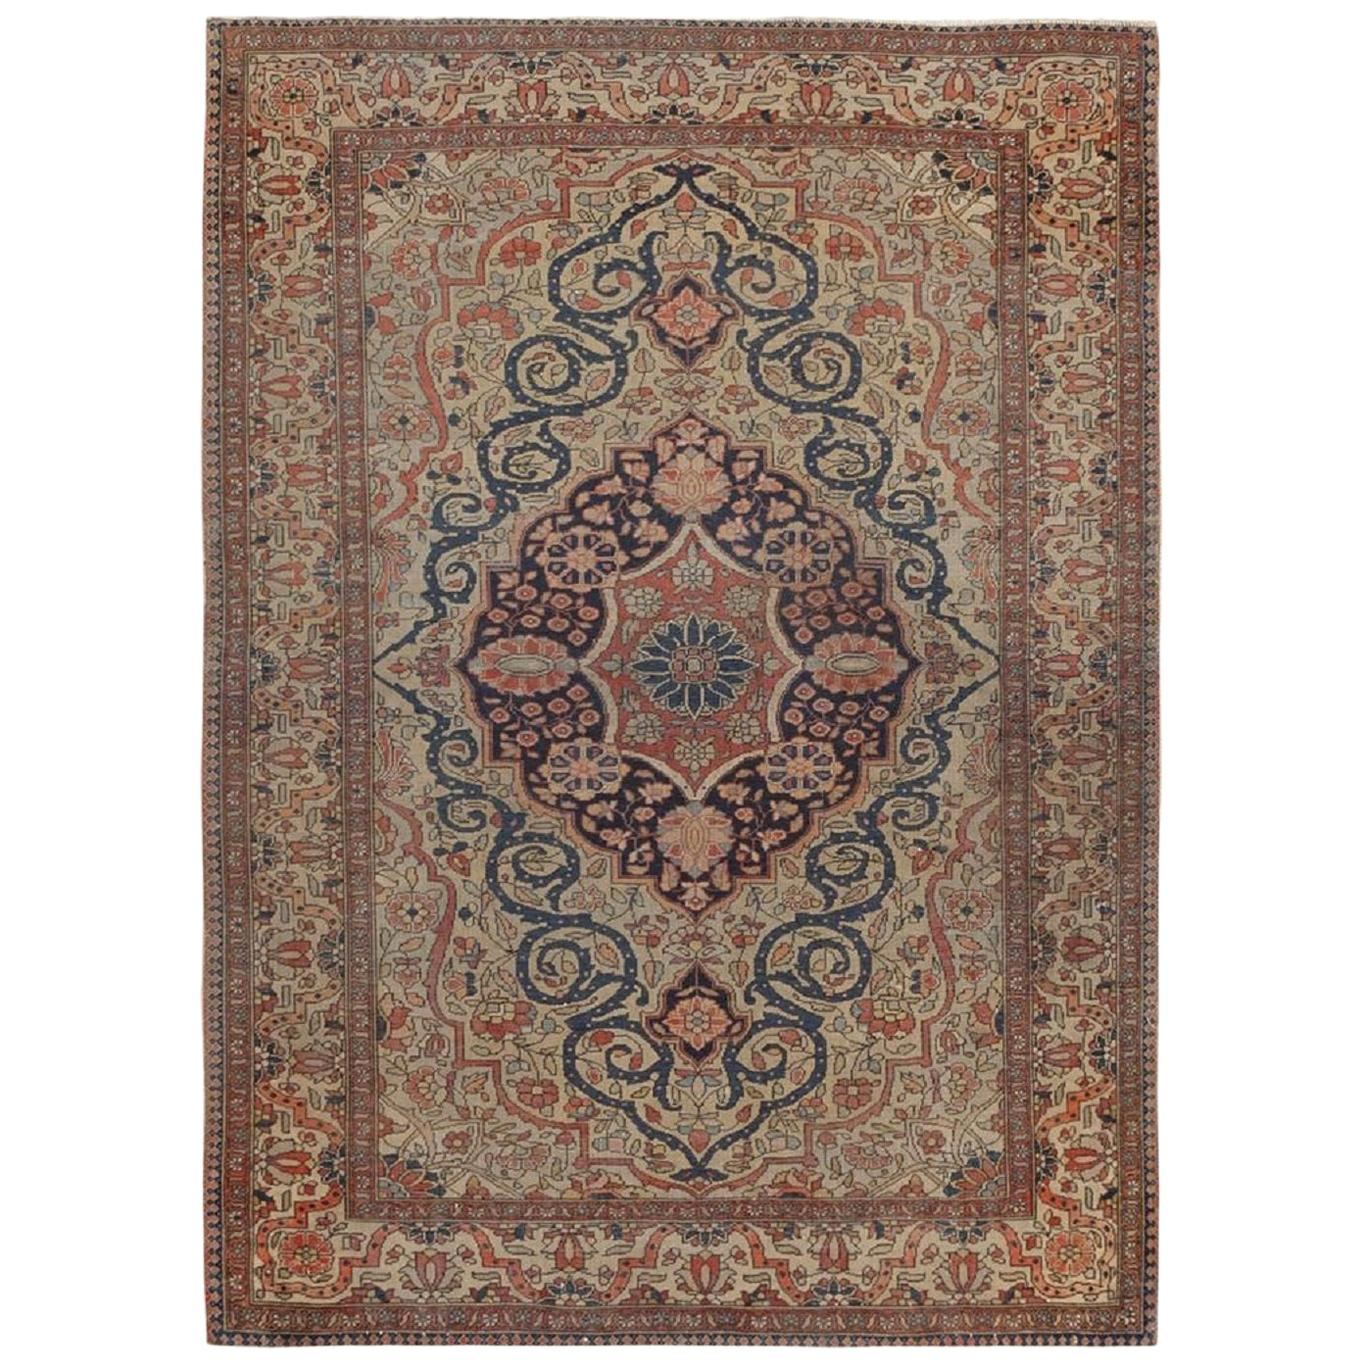 Antique Persian Mohtasham Kashan Rug. Size: 2 ft 10 in x 3 ft 10 in